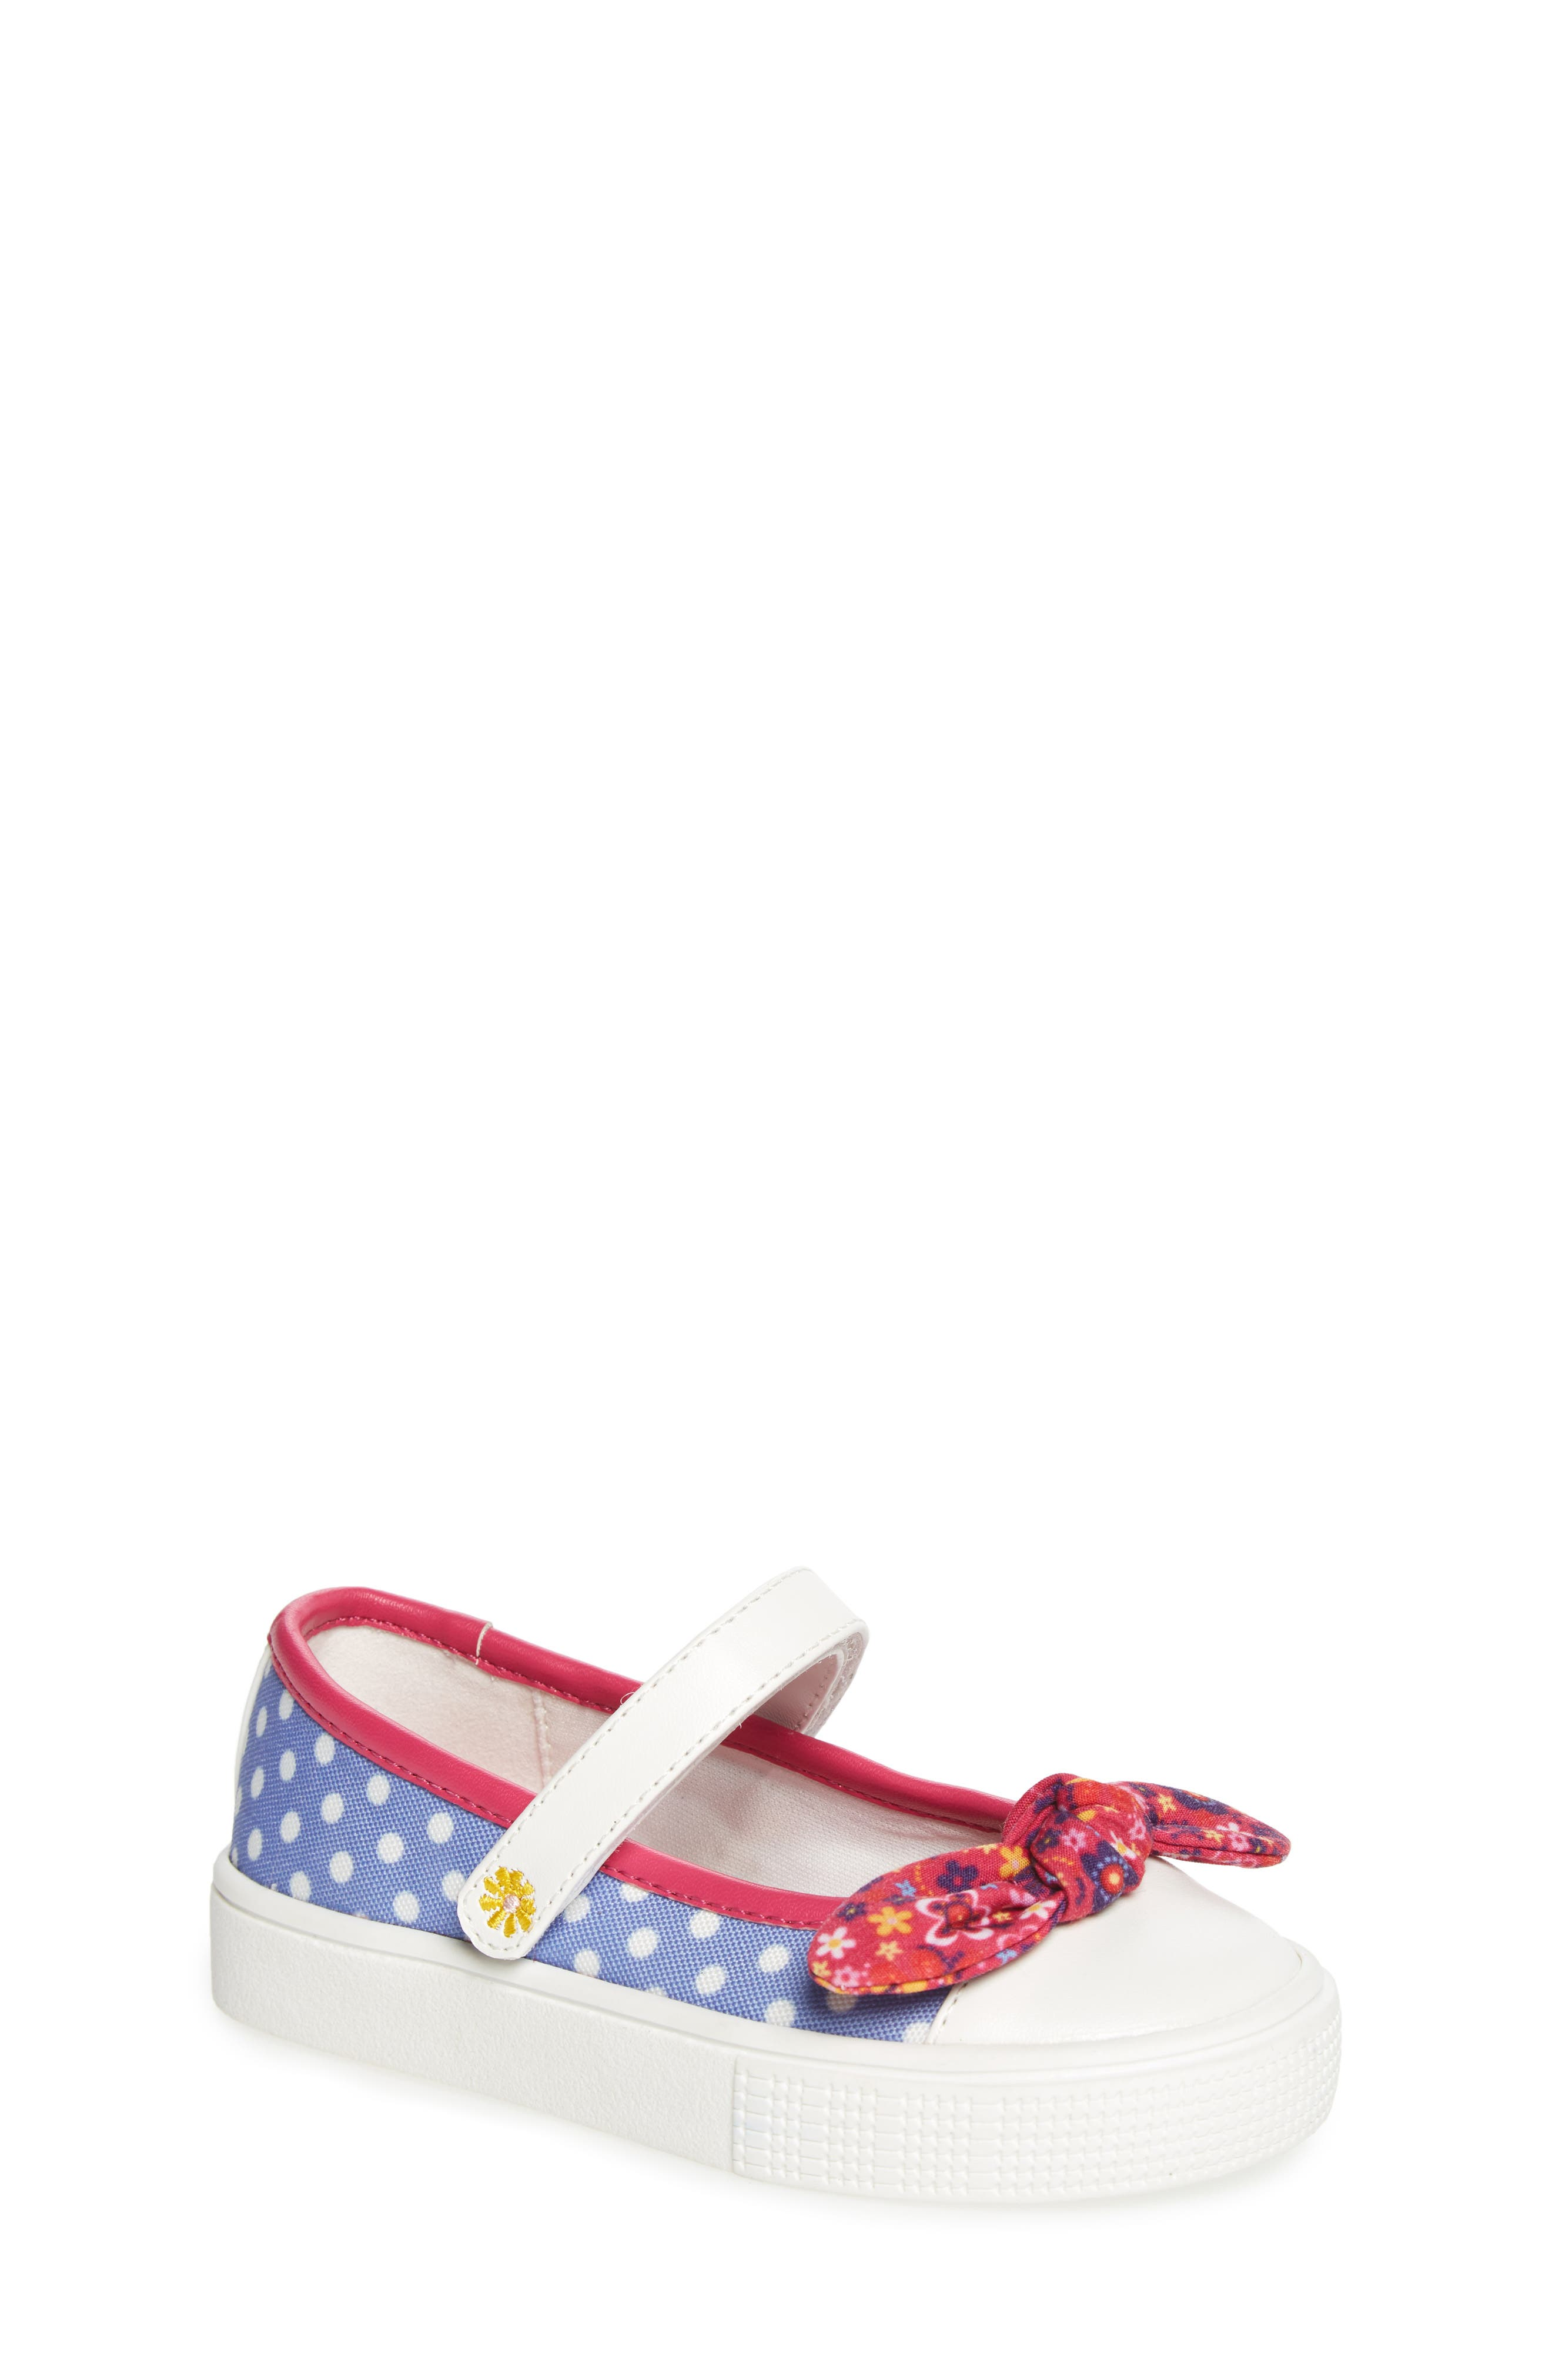 Alternate Image 1 Selected - WellieWishers from American Girl Kendall Mary Jane Sneaker (Walker, Toddler, Little Kid & Big Kid)